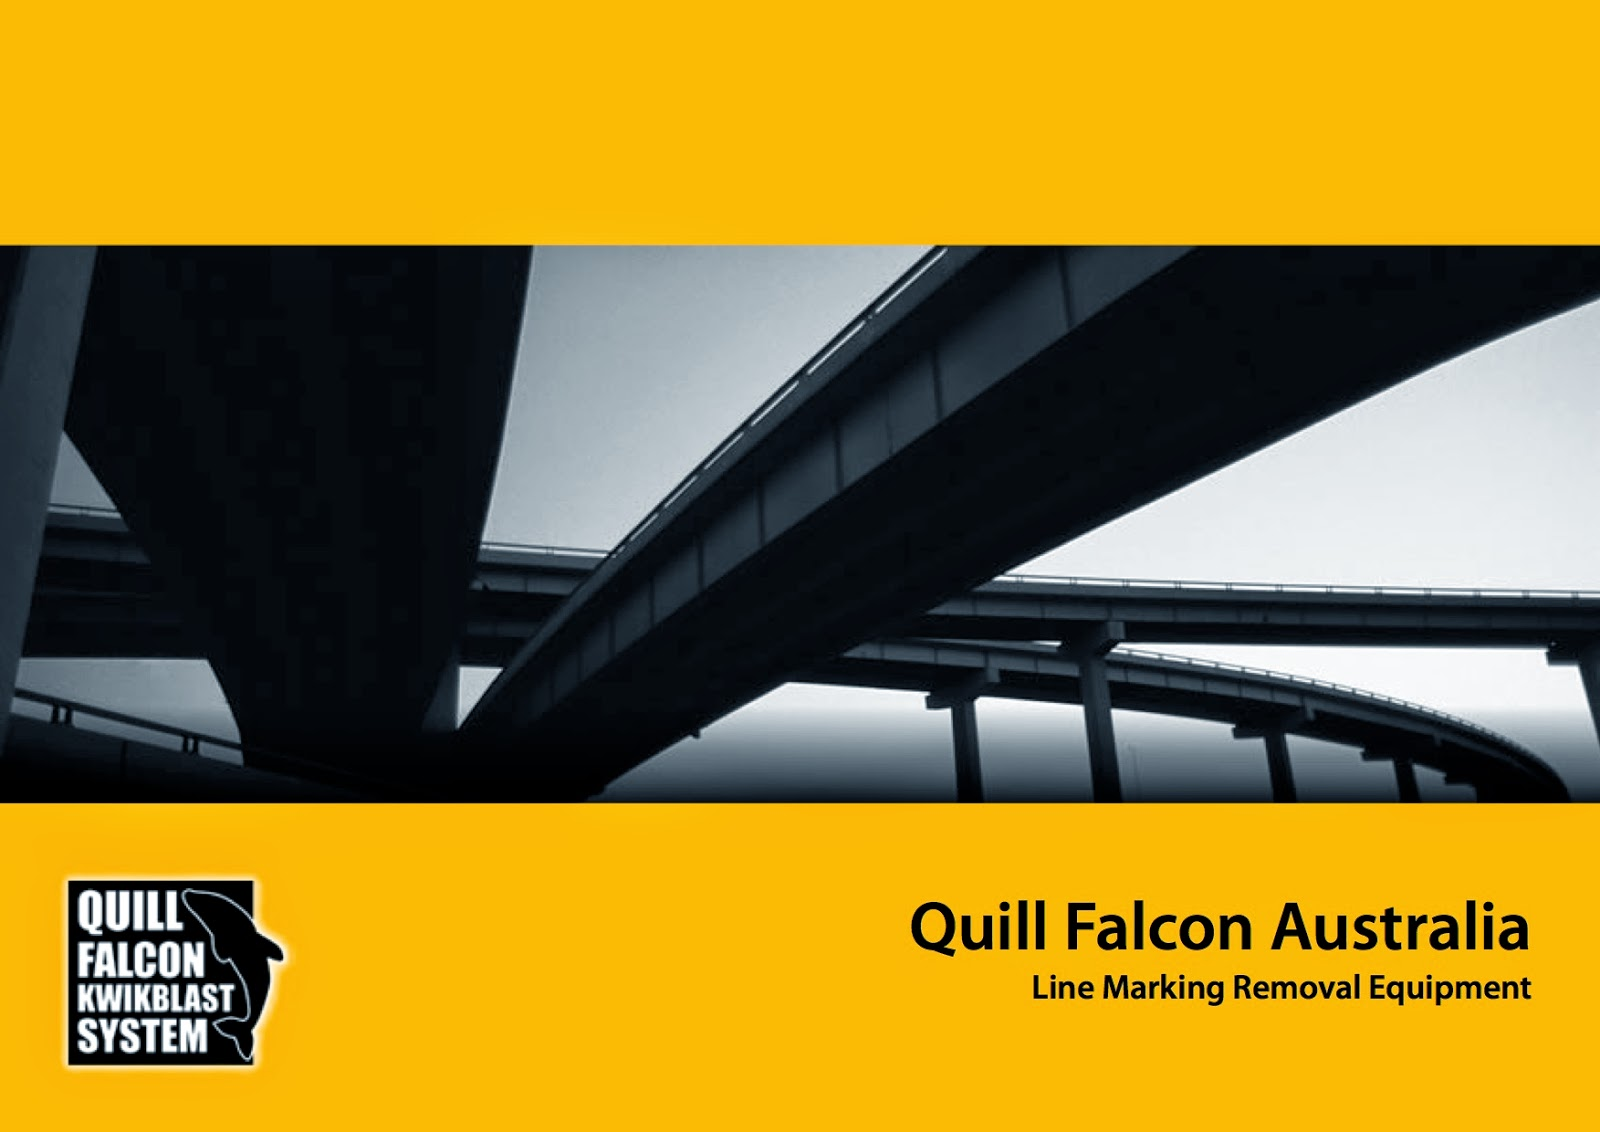 Quill Falcon Australia | Adelaide abrasive boating equipment